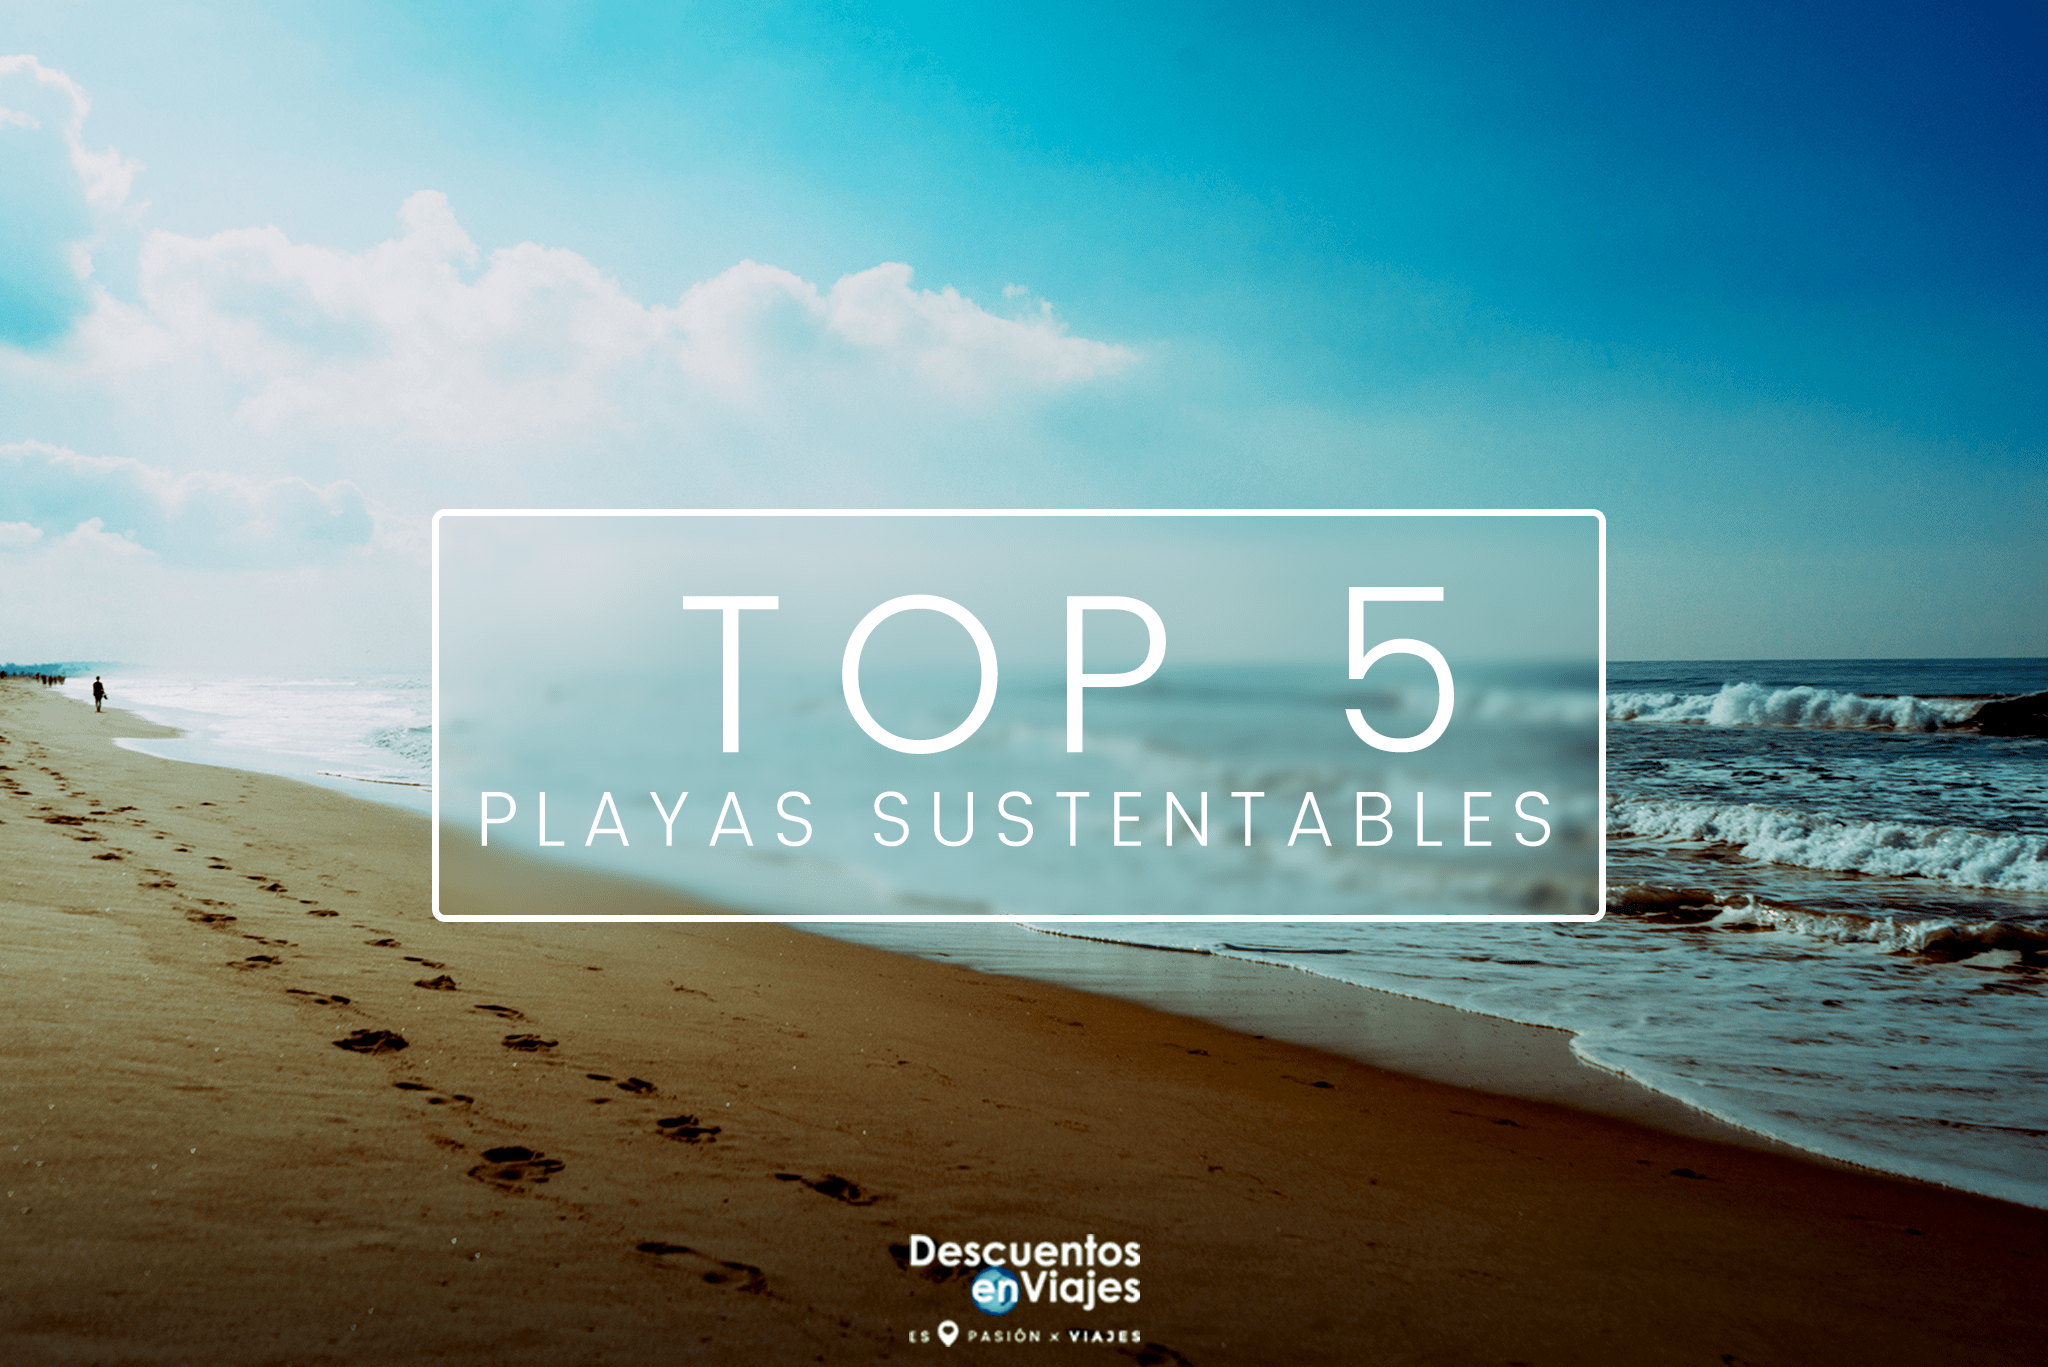 Top 5 playas Sustentables